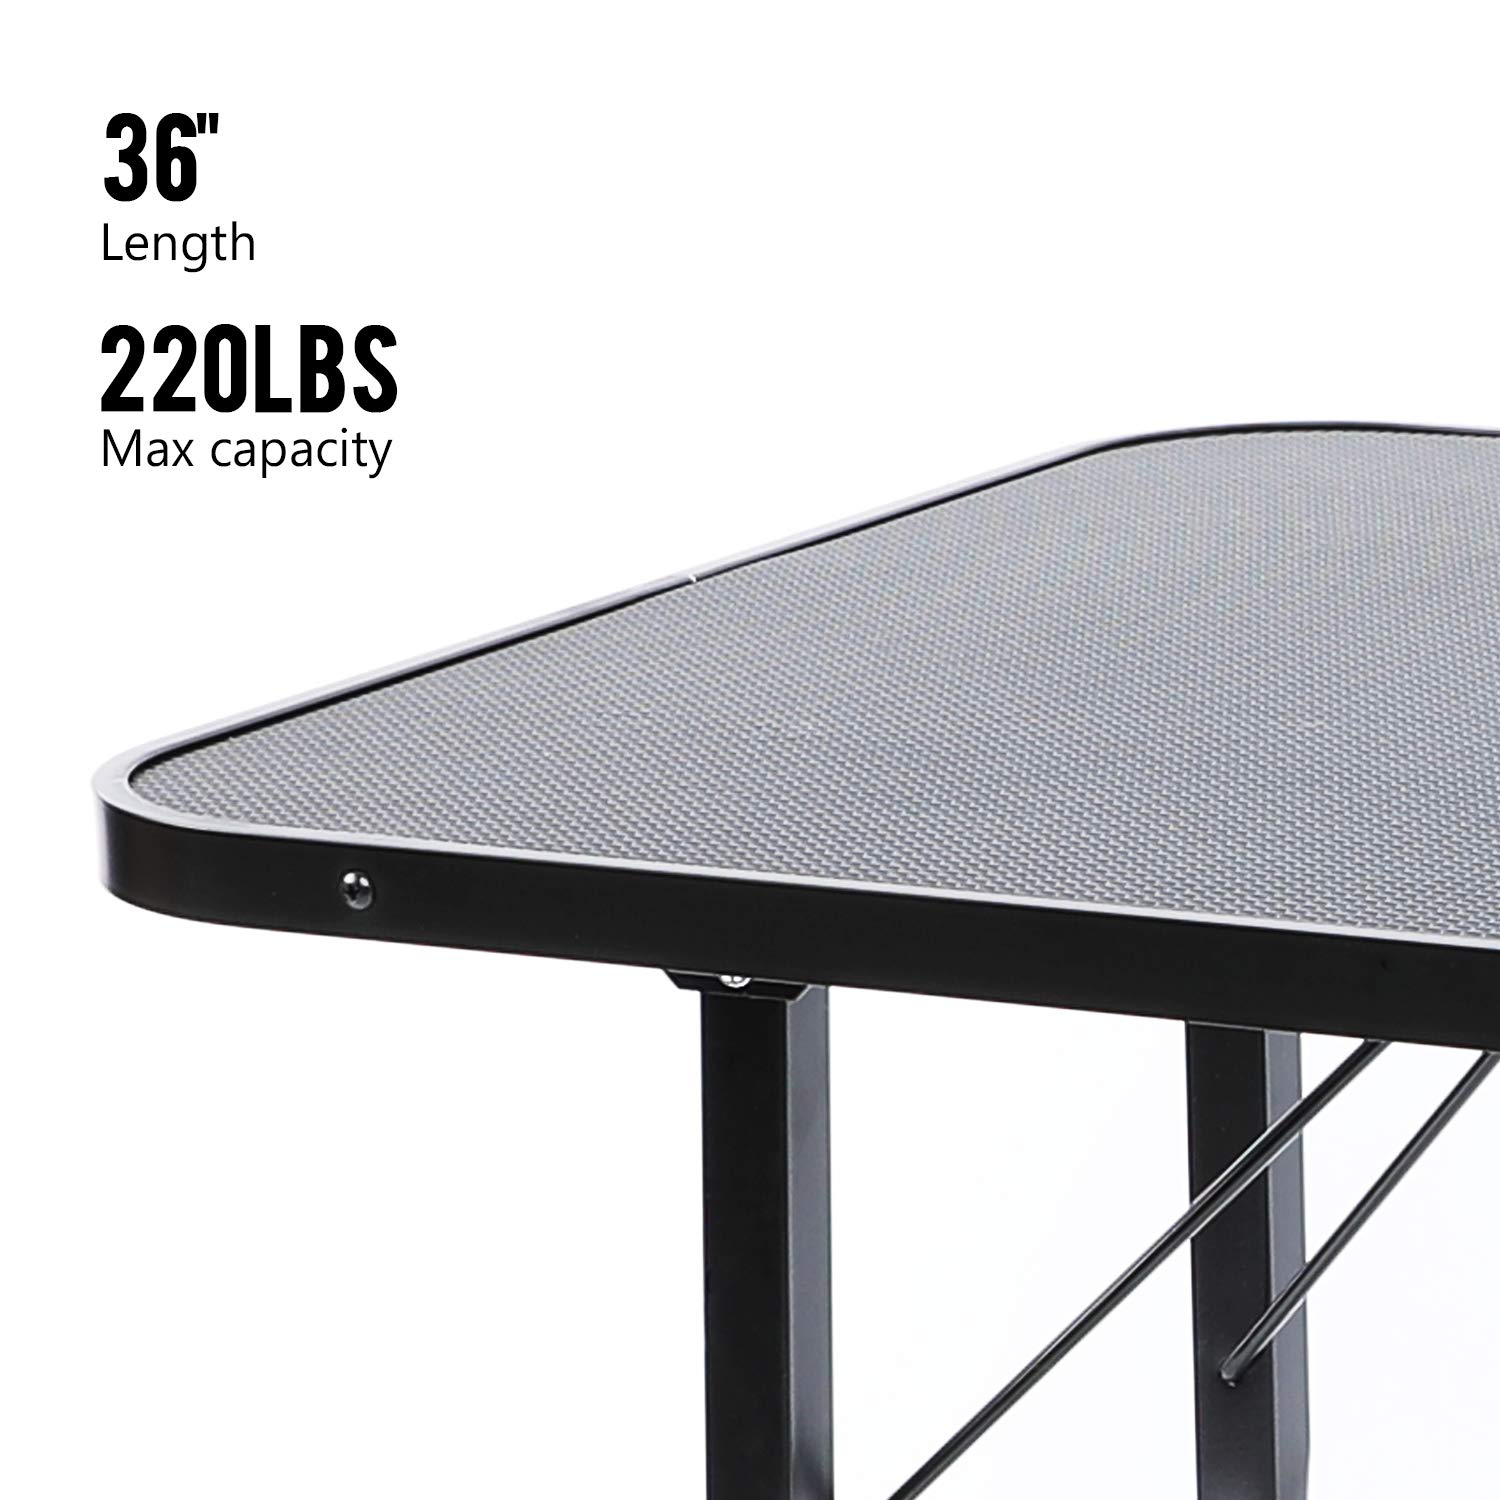 LAZY BUDDY Dog Grooming Table, Pet Grooming Table, 36'' Length Grooming Table for Max Capacity 220 LBS, Foldable, Portable with Adjustable Arms for Small, Medium and Large Dogs and Other Pets. (M)